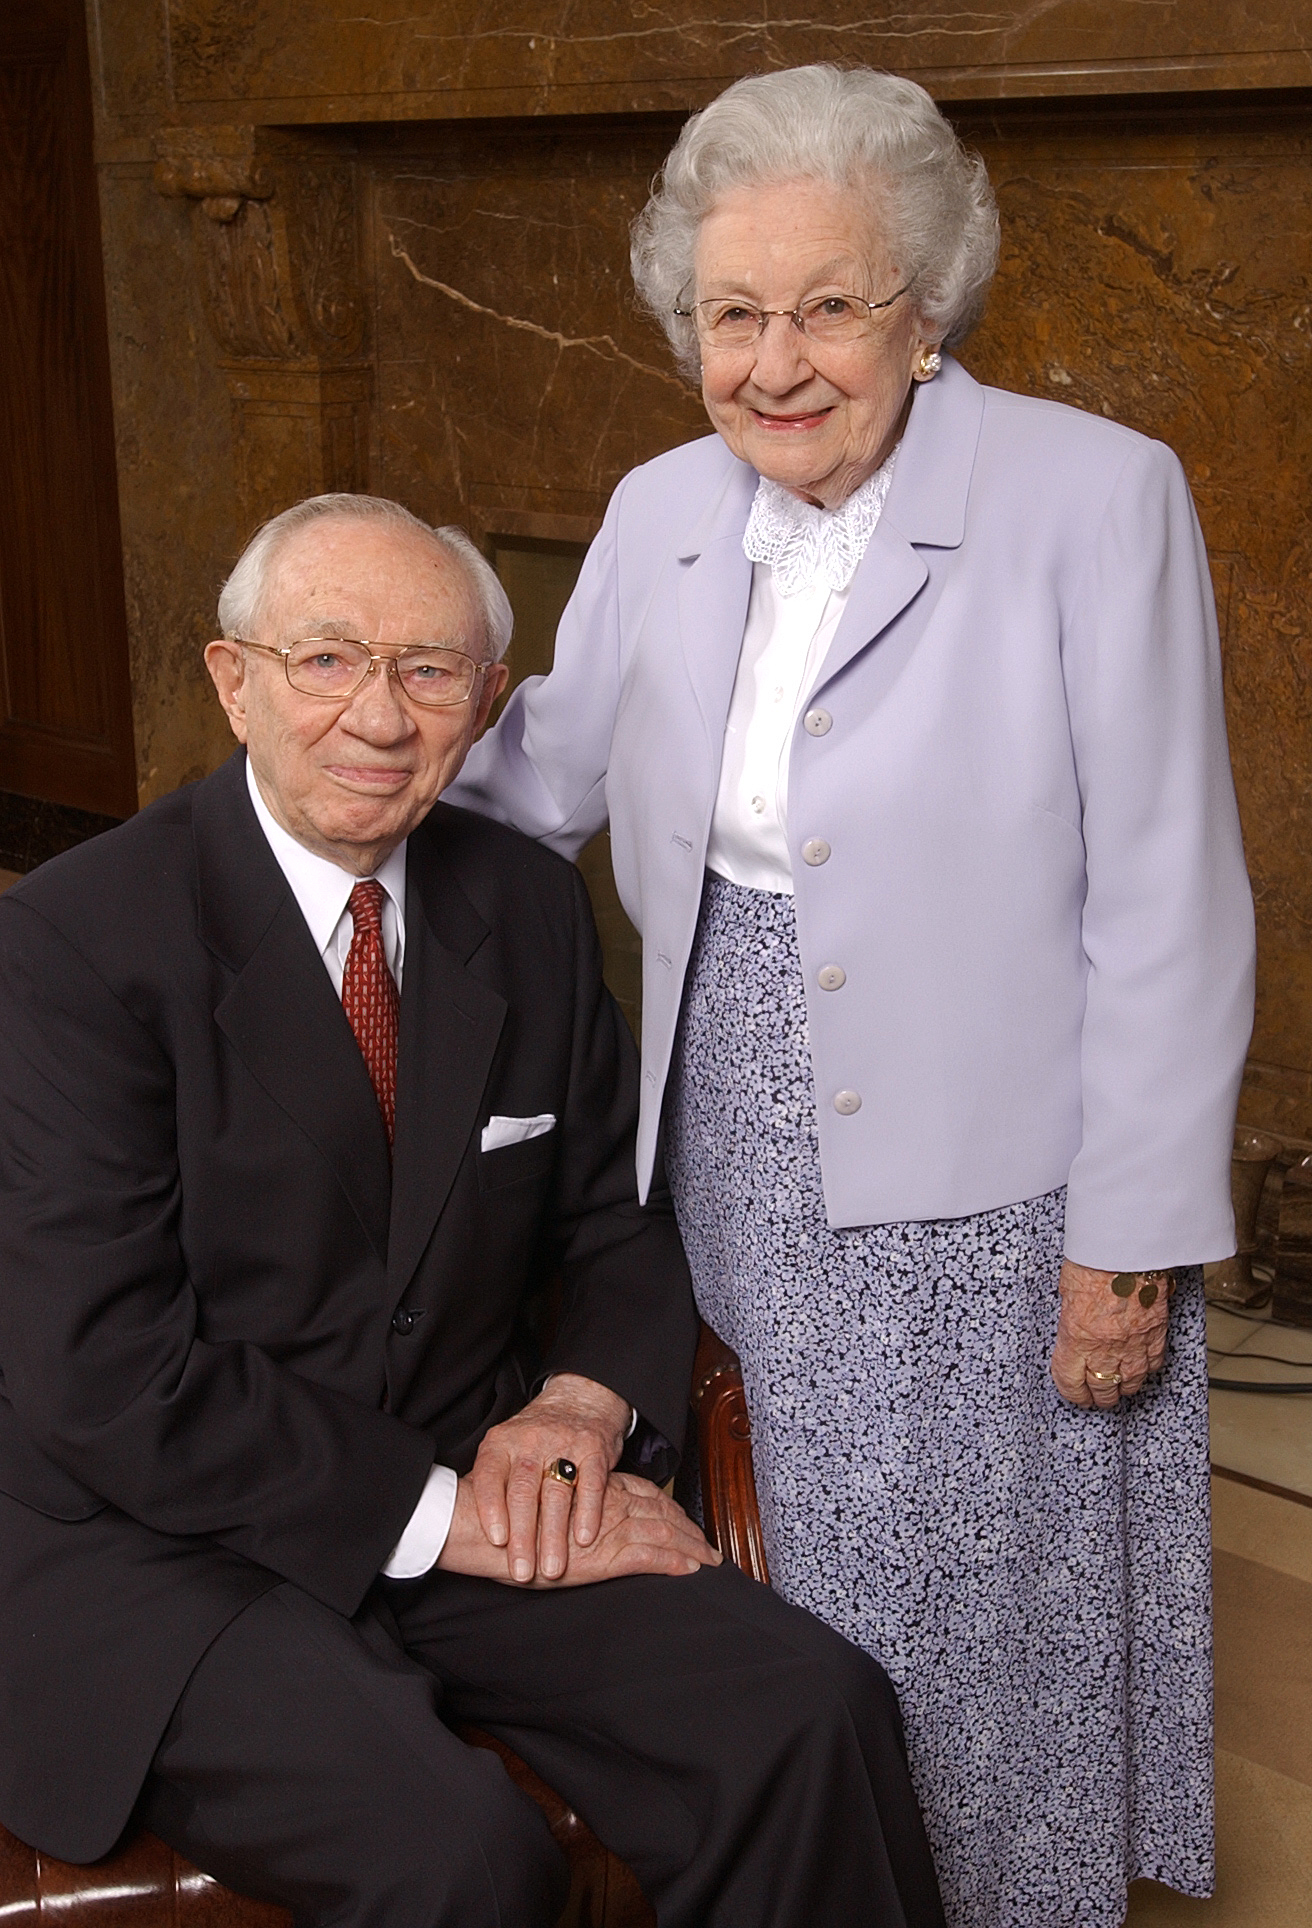 President Gordon B. and Marjorie Hinckley pose for photo prior to media interview Mar 13th, 2003.